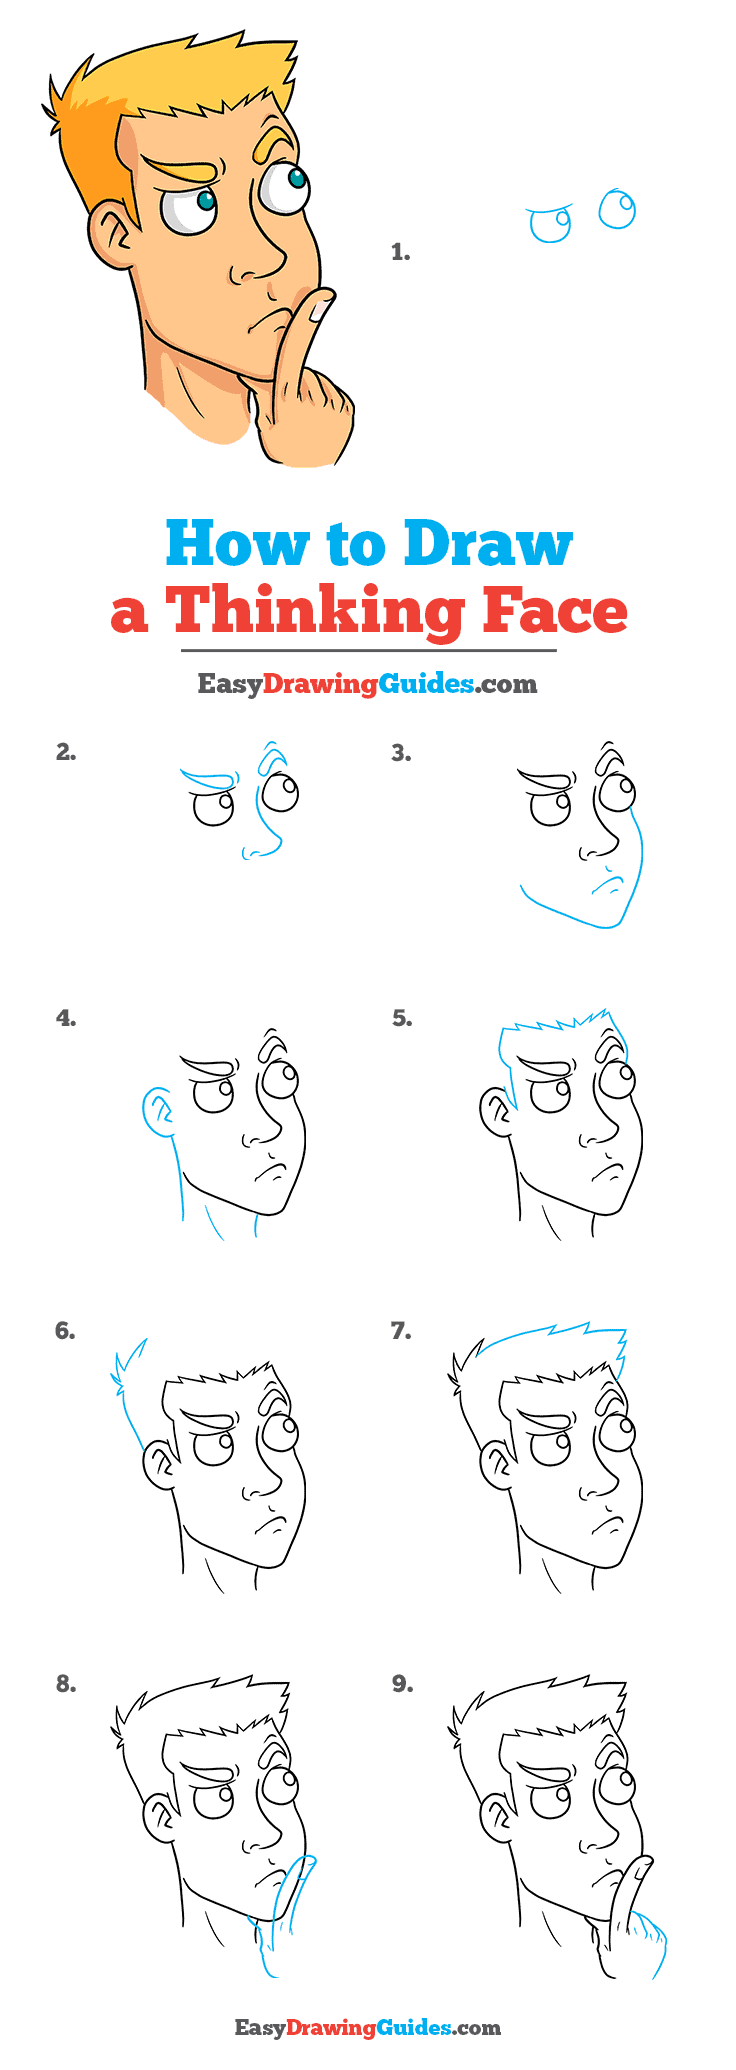 How to Draw Thinking Face